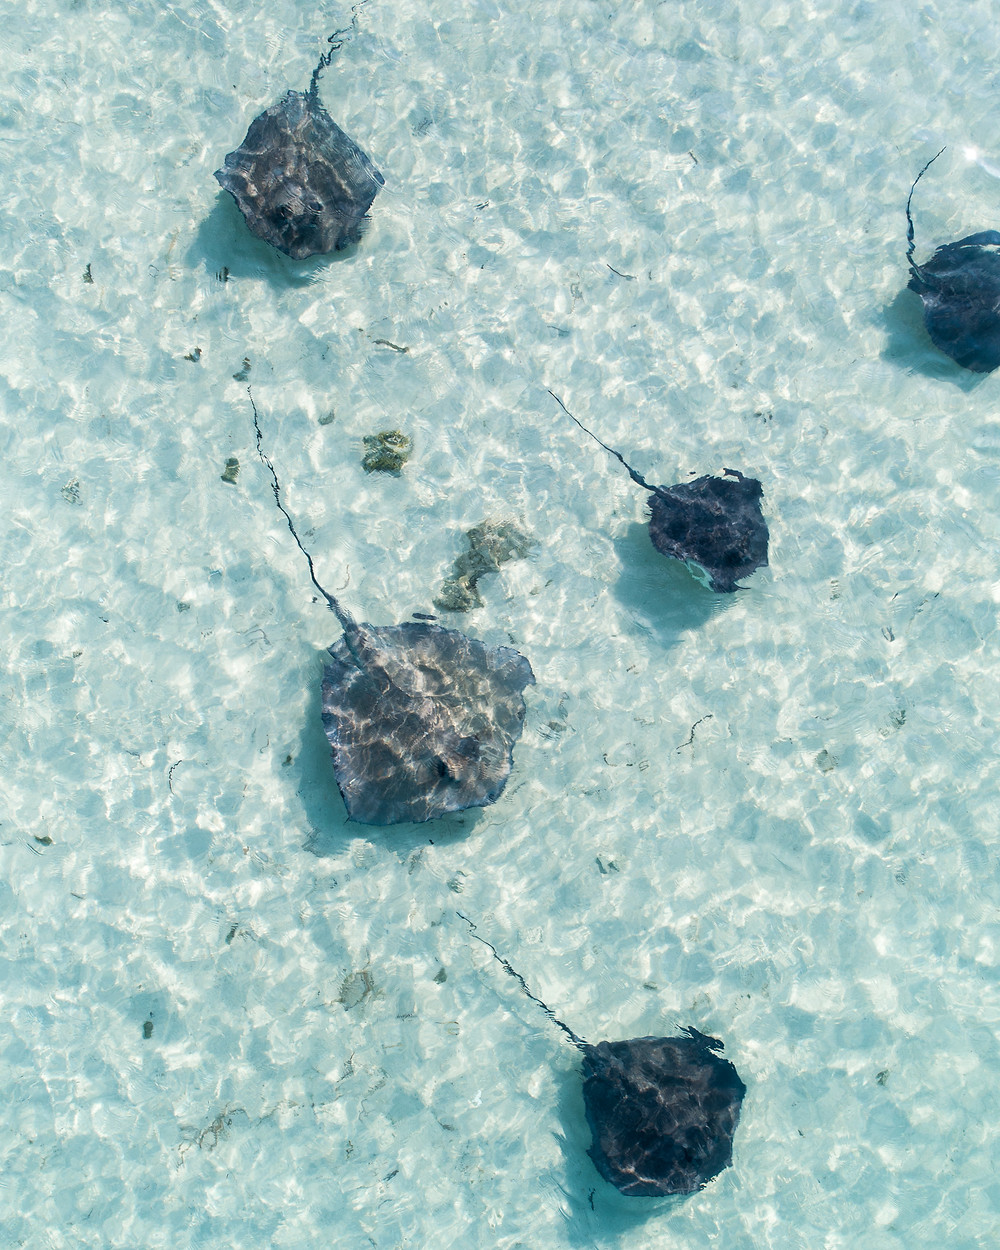 Stingrays picture taken from a drone in the bahamas by pierce gainey